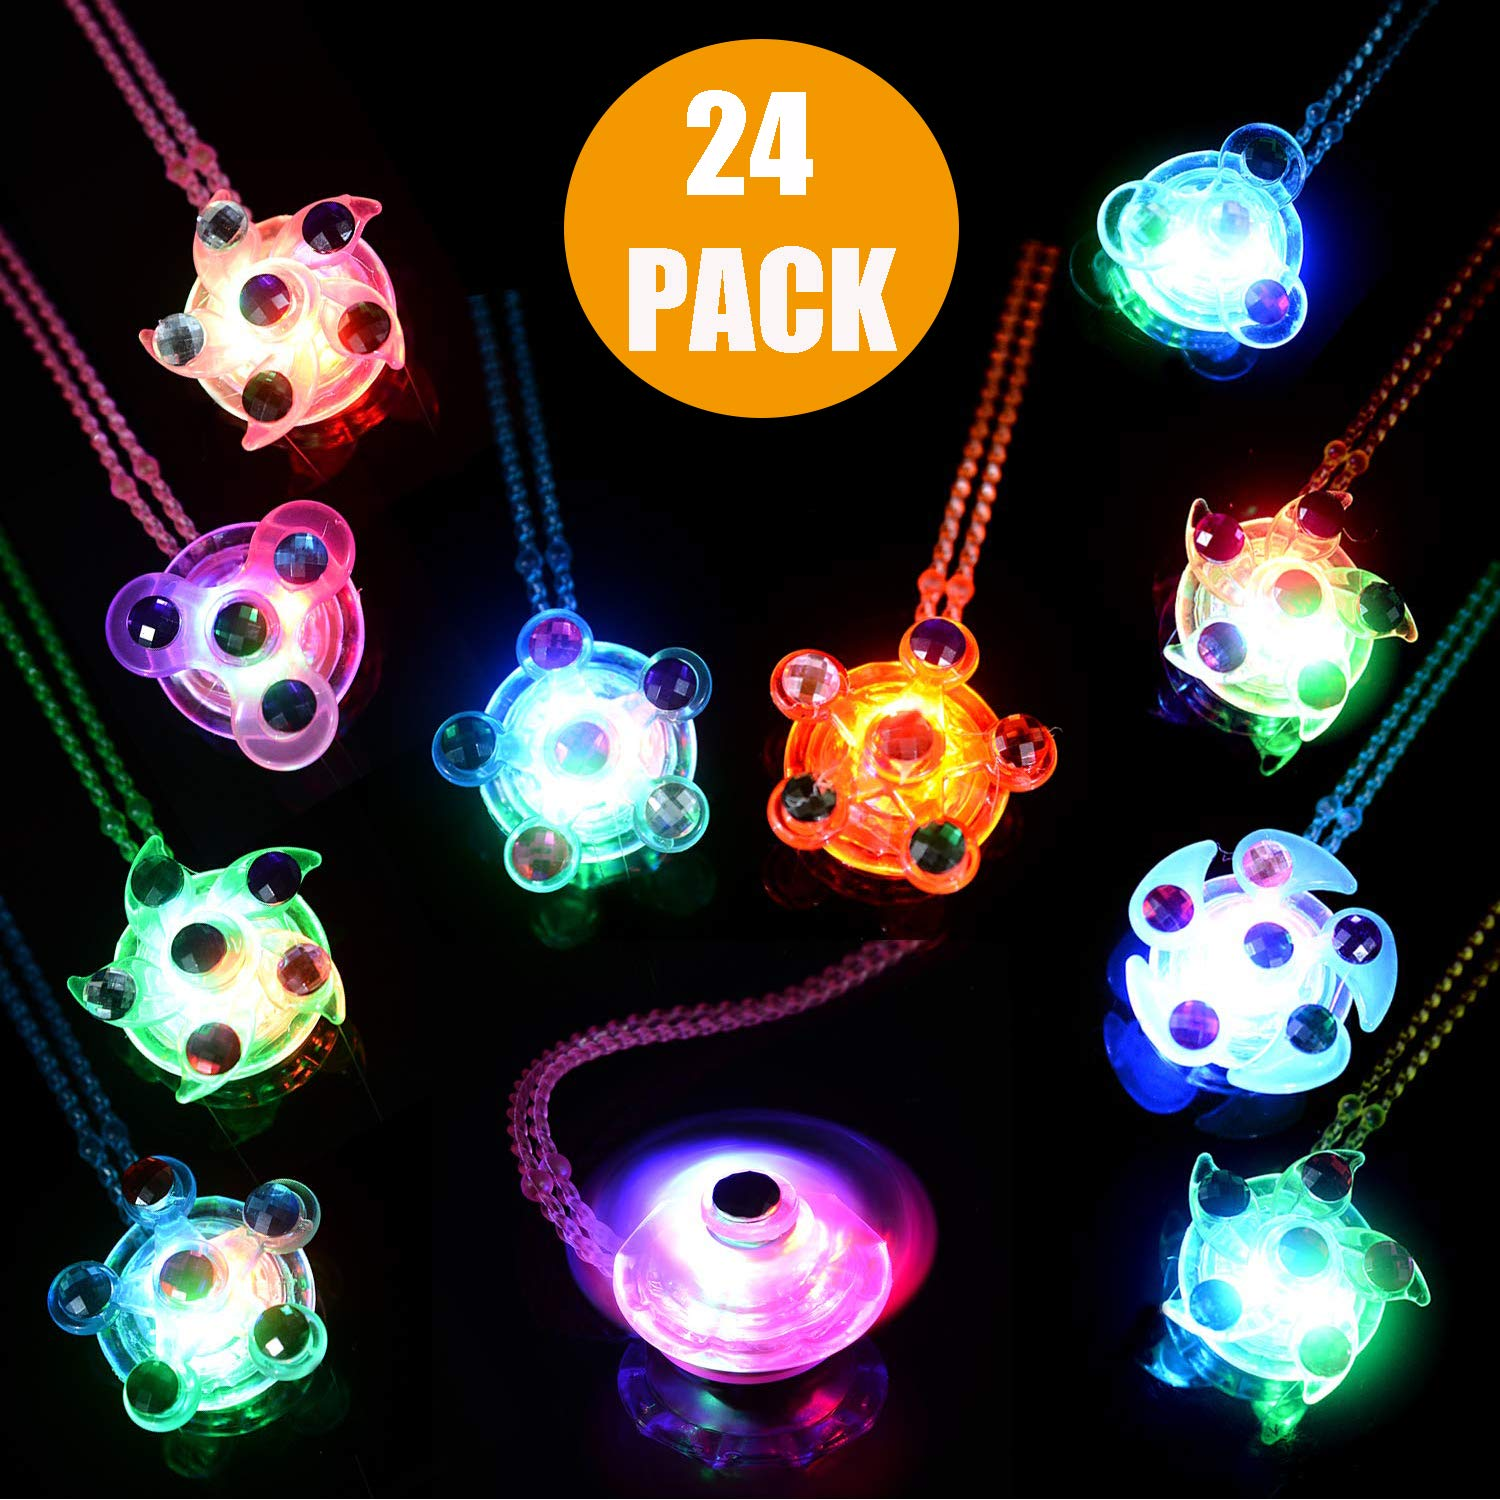 Mikulala LED Party Favors for Kids Prizes 24 Pack Glow in The Dark Party Supplies Light Up Necklaces Bulk Hand Spin Stress Relief Anxiety Toys for Girls Boys Christmas Birthday New Year Eve (24 Pack) by Mikulala